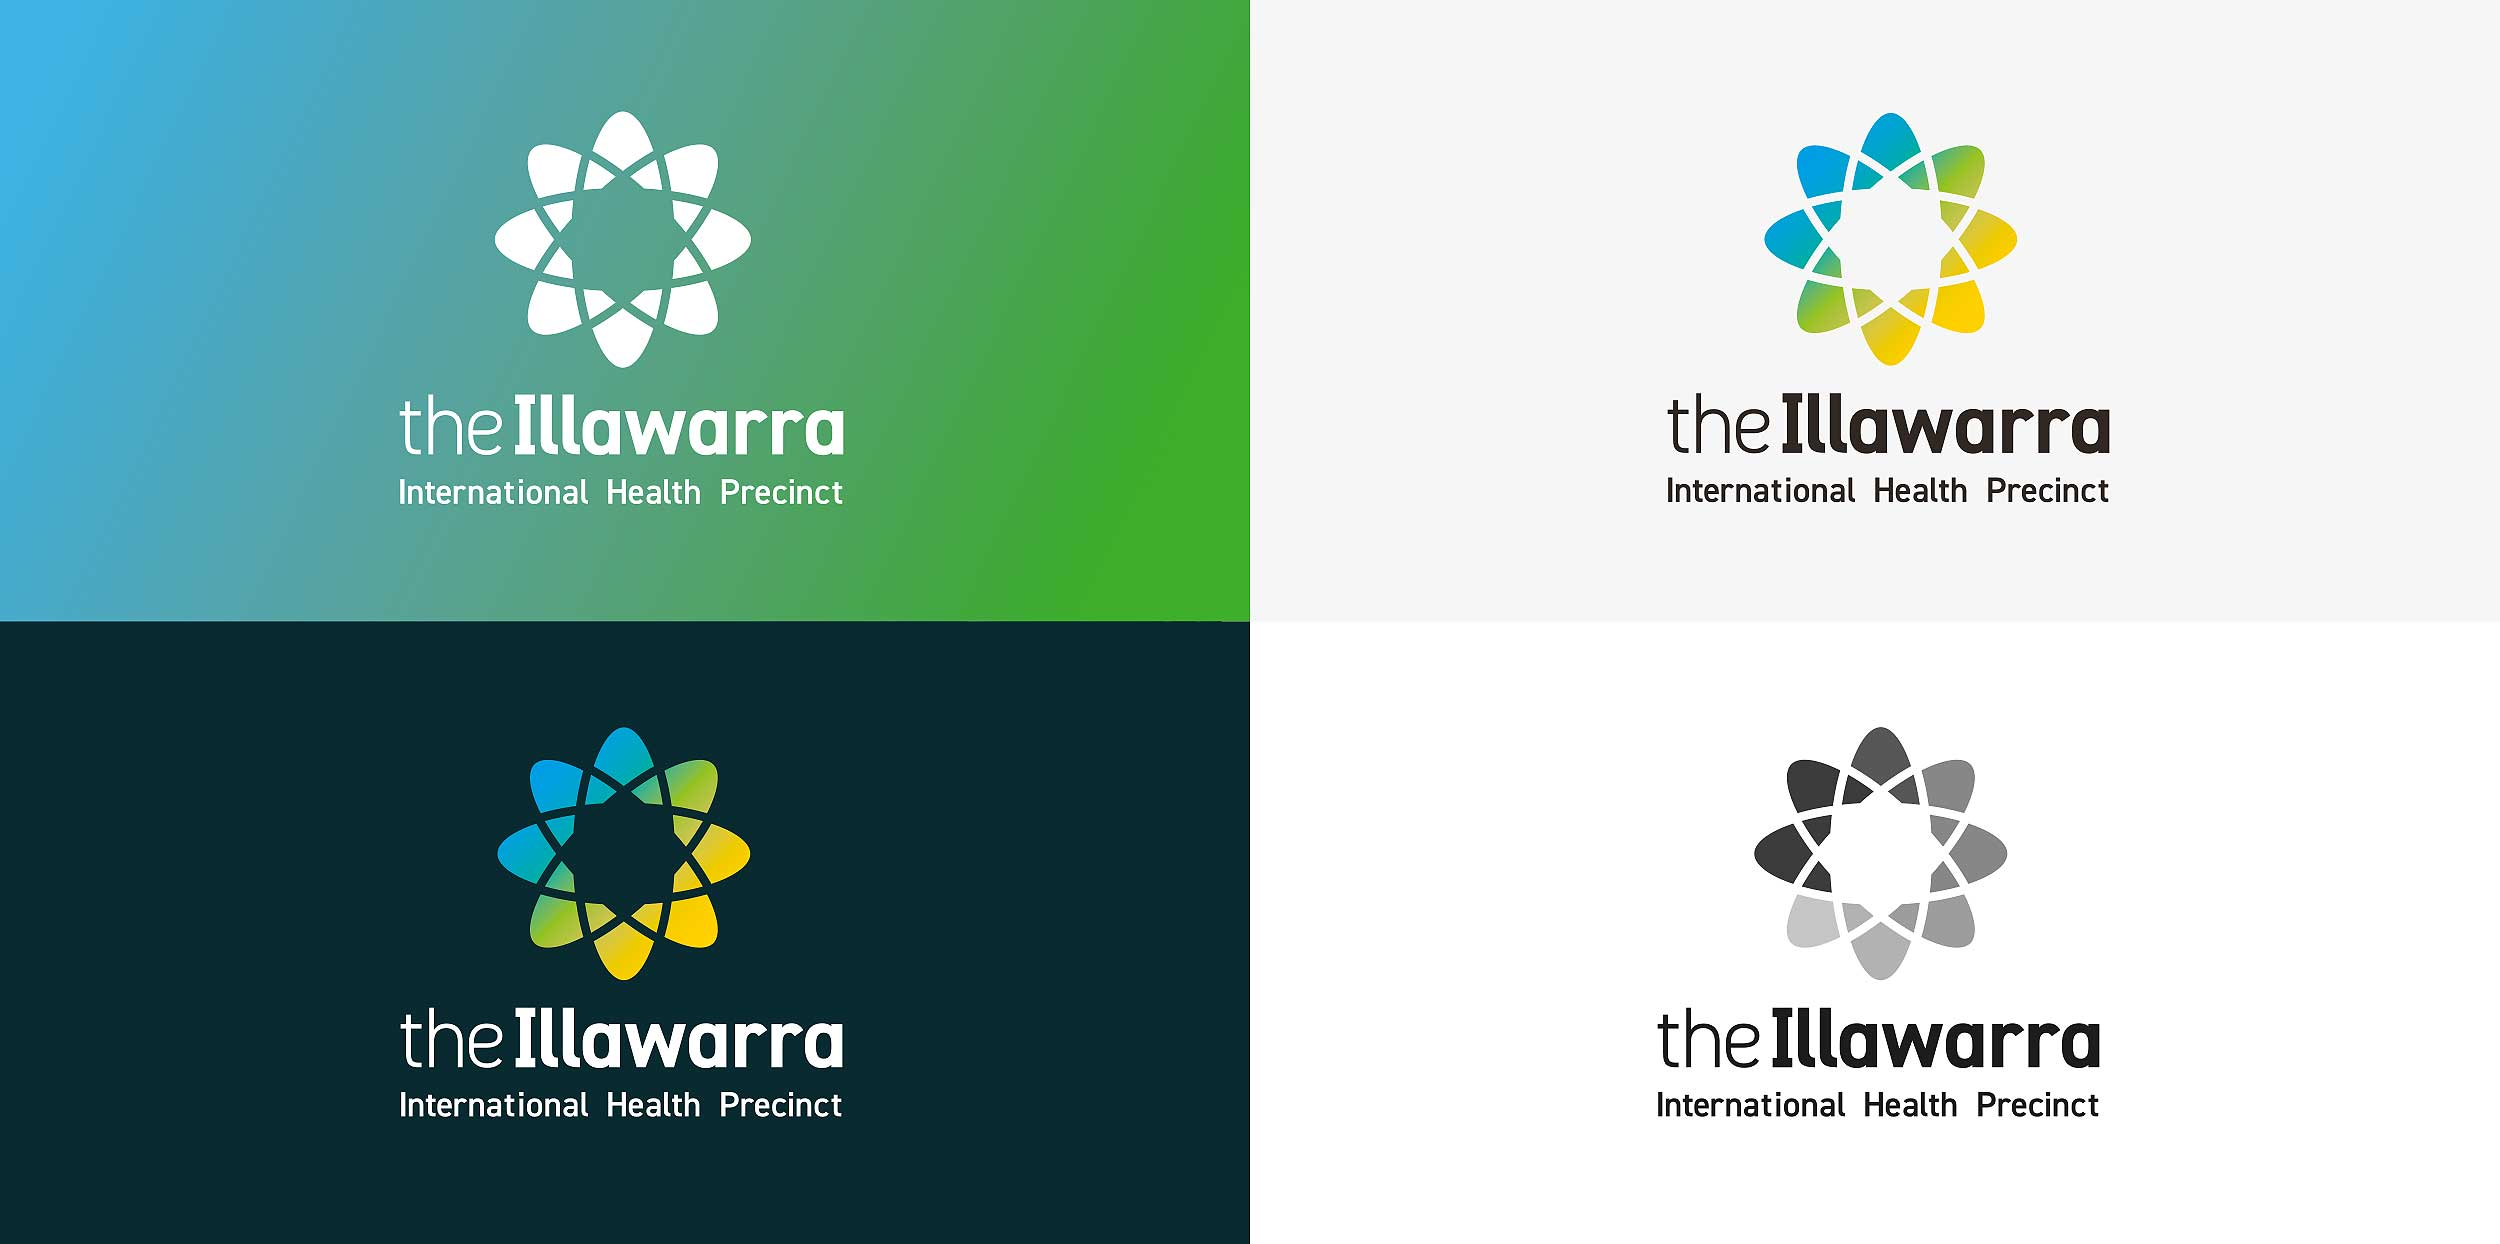 Illawarra-International-Health-Precinct-Hospital-Branding-Handle-Sydney-Branding_5.jpg